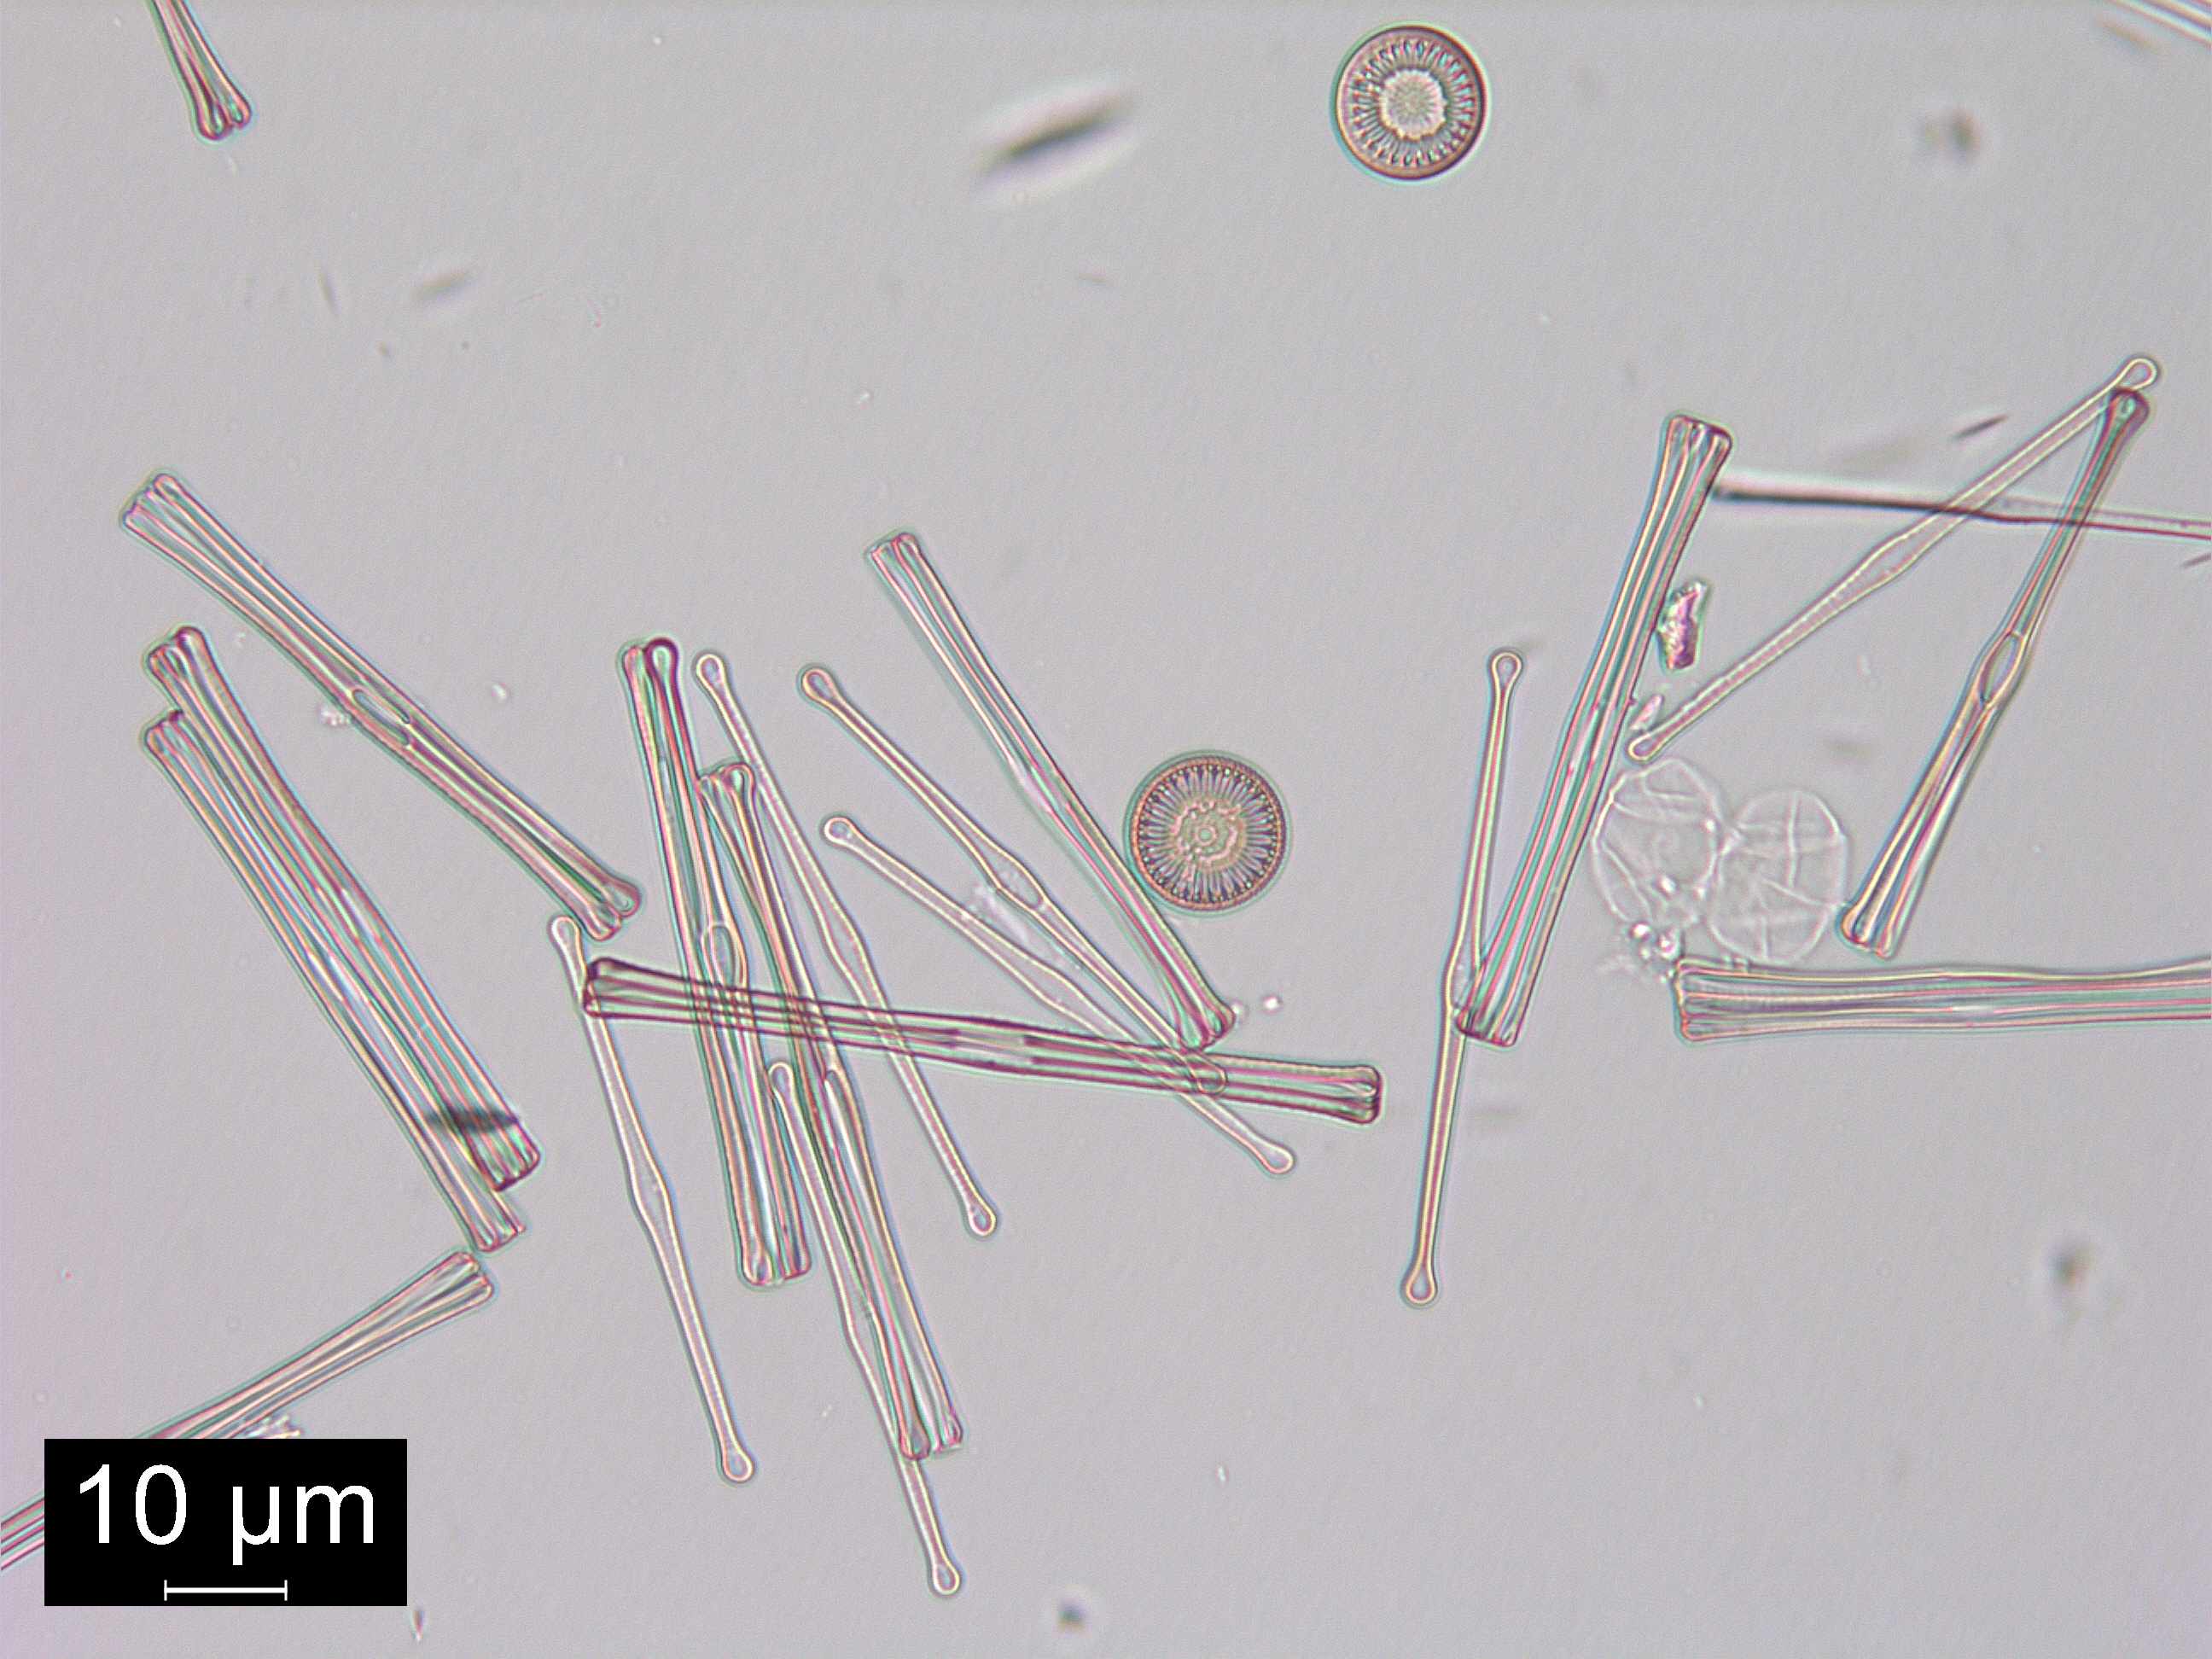 diatom diagram - photo #27